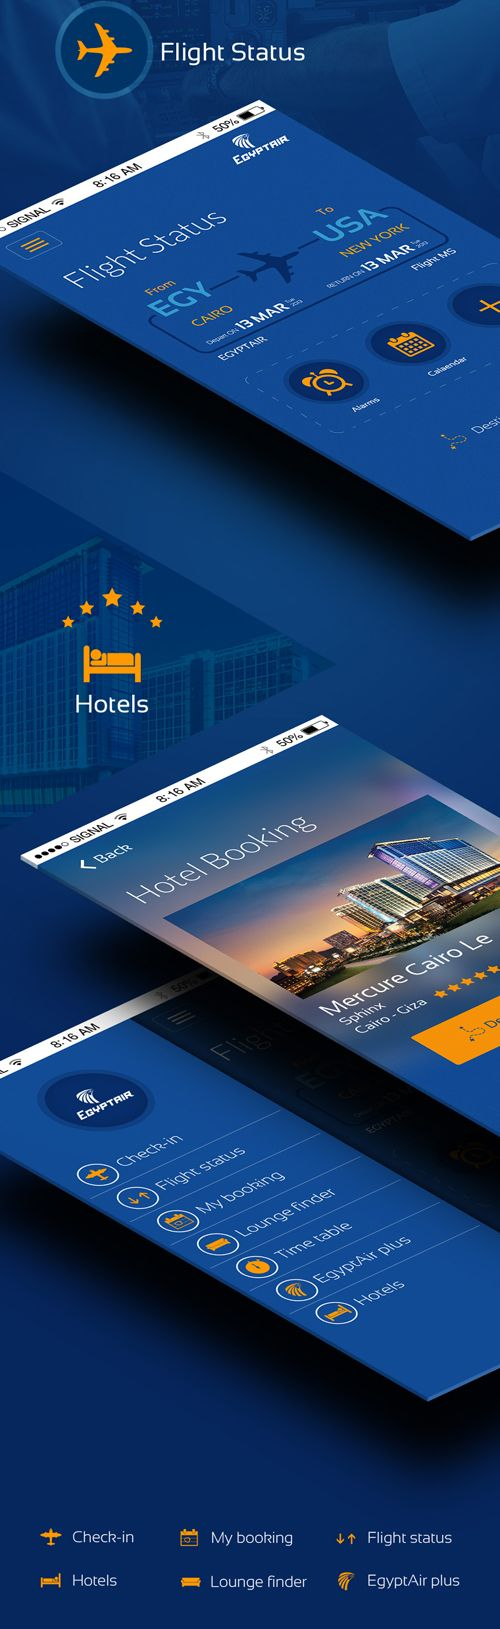 Redesign Egyptair mobile app UI Design Concepts to Boost User Experience